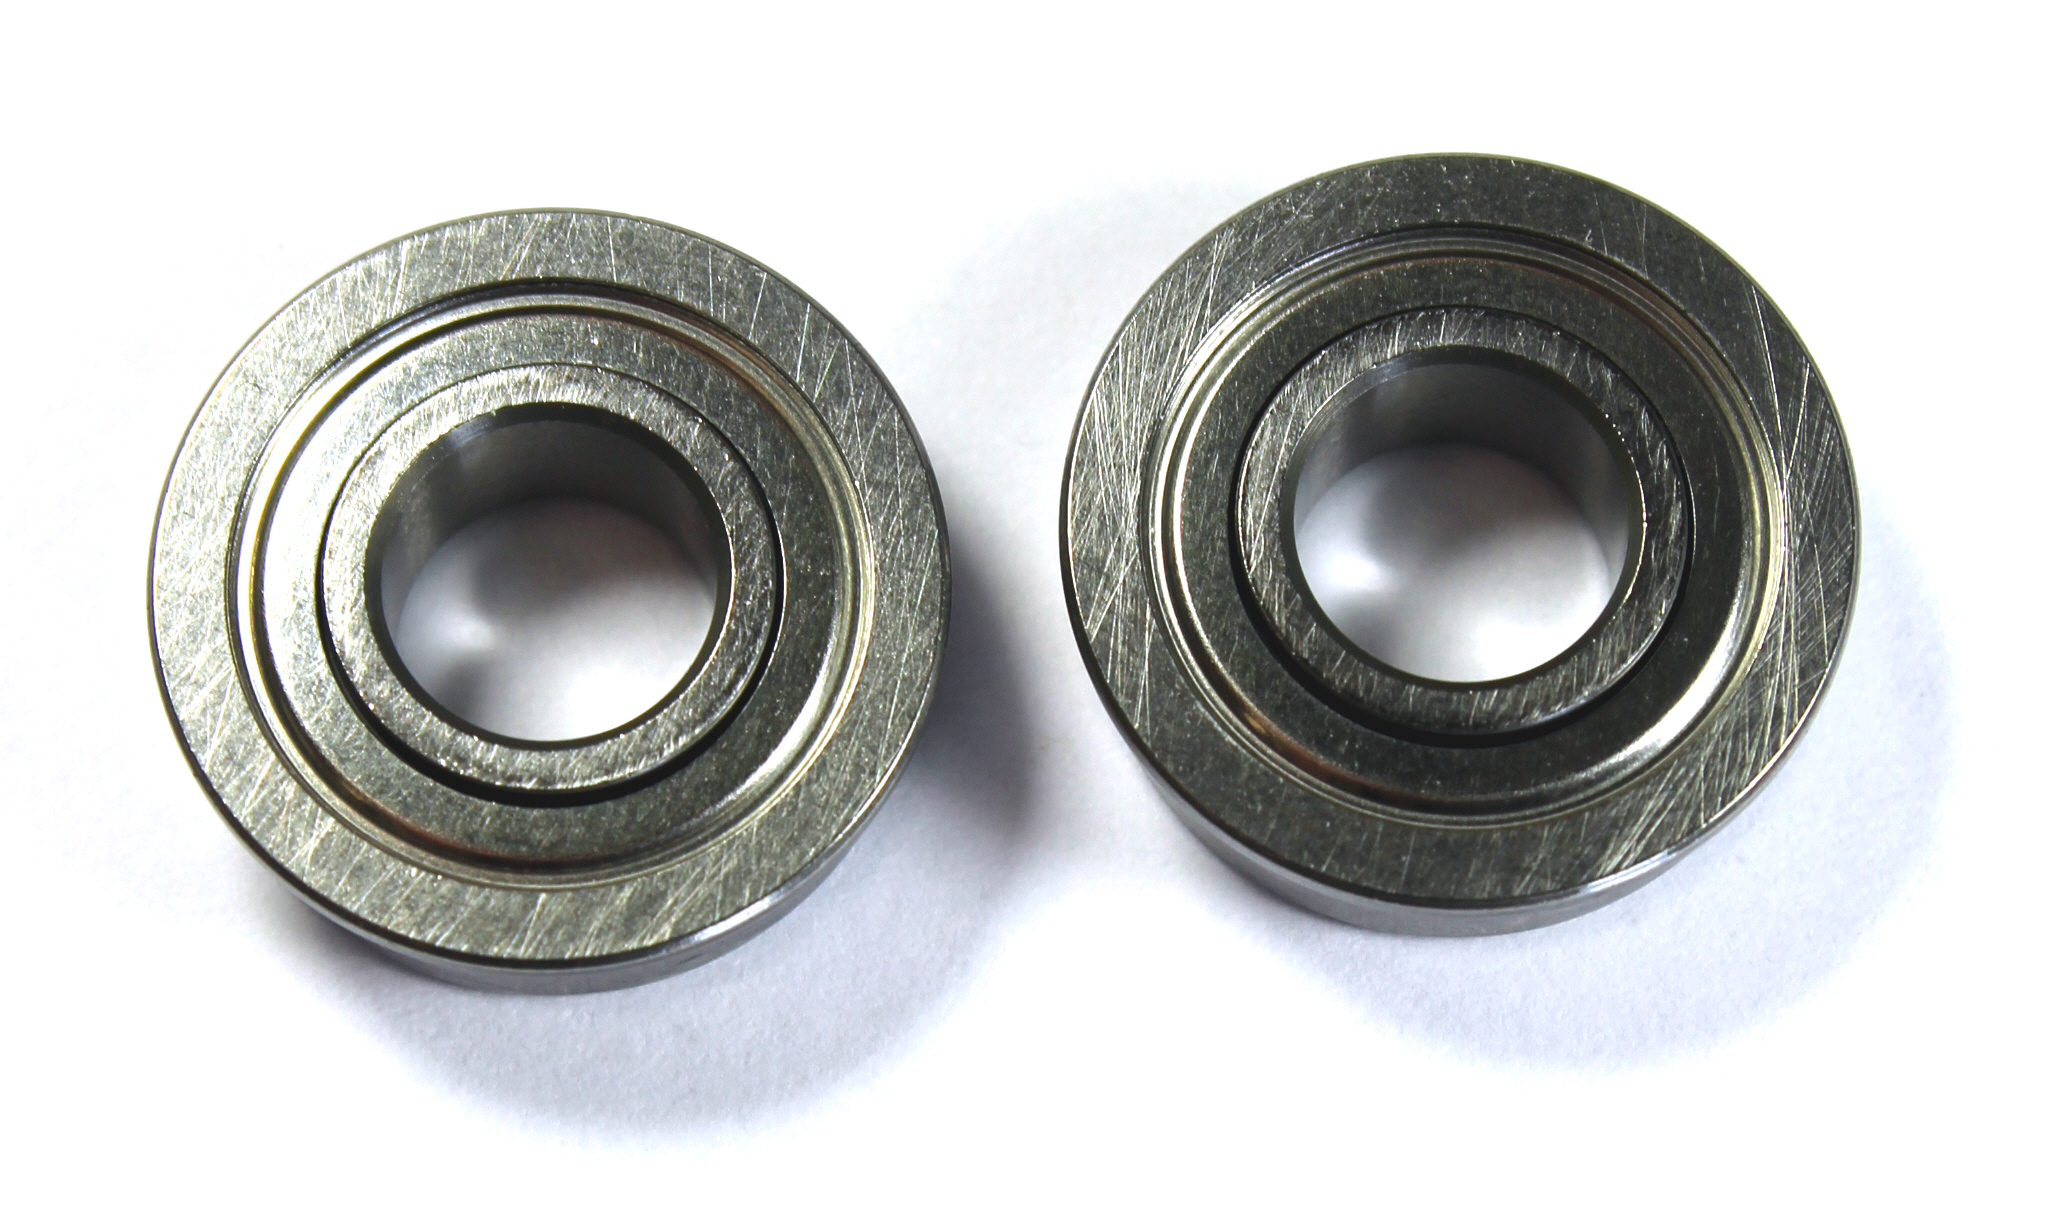 Taper O.D. bearings have a flange on the outer ring, an extended or wider inner ring and an outer ring that is slightly